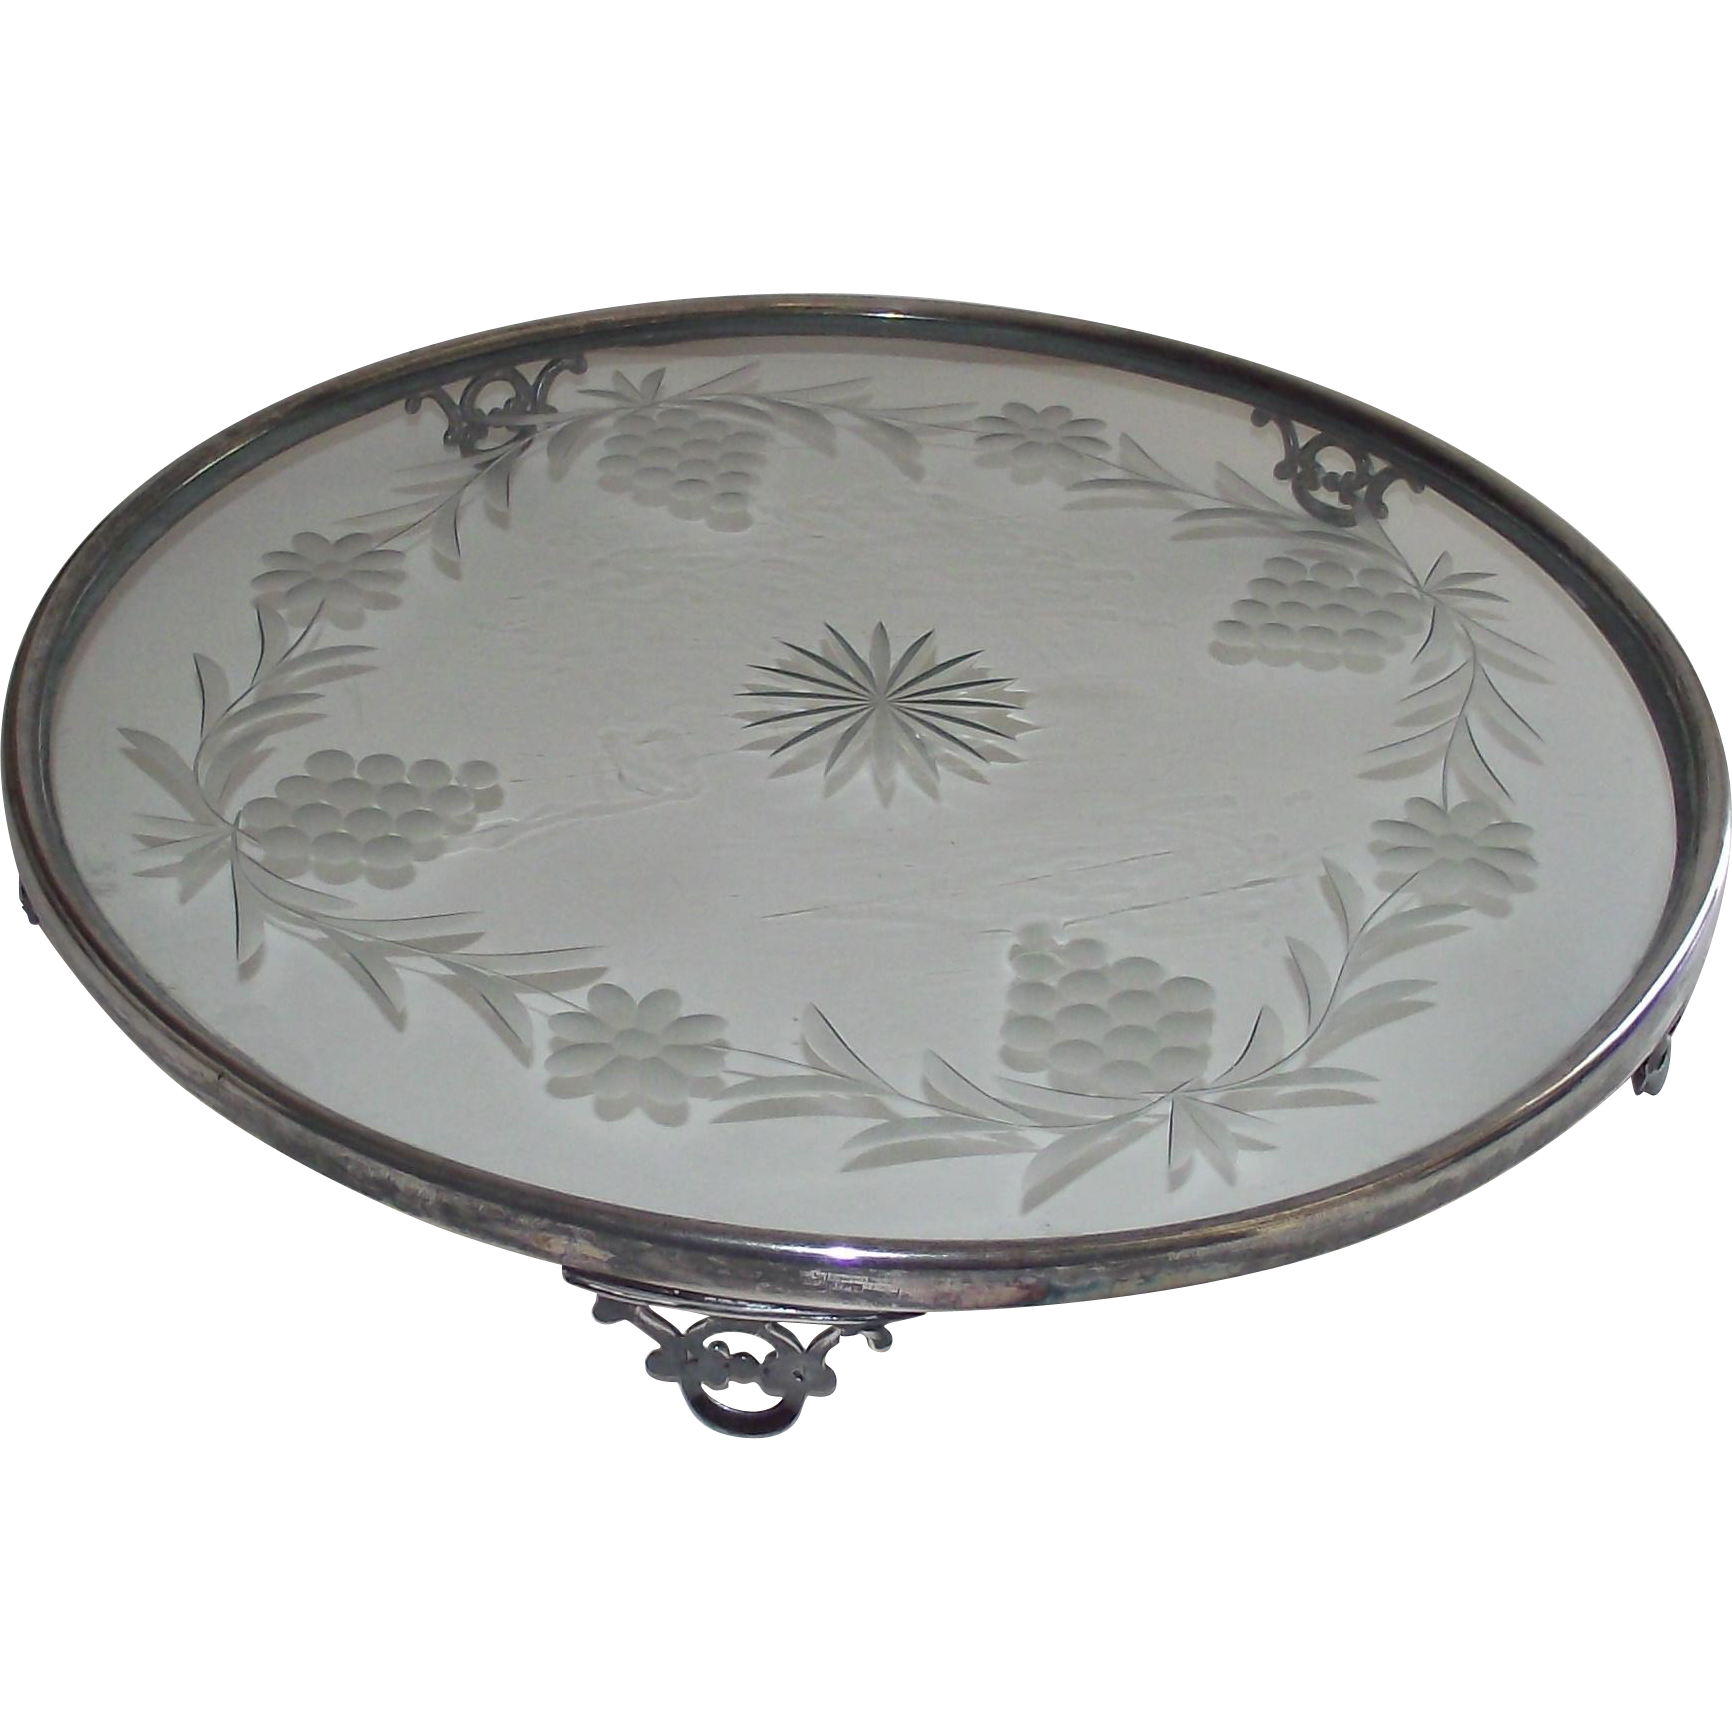 Art Deco Plateau  Toronto Silver Plate with Glass Center     Dining Room Center Piece